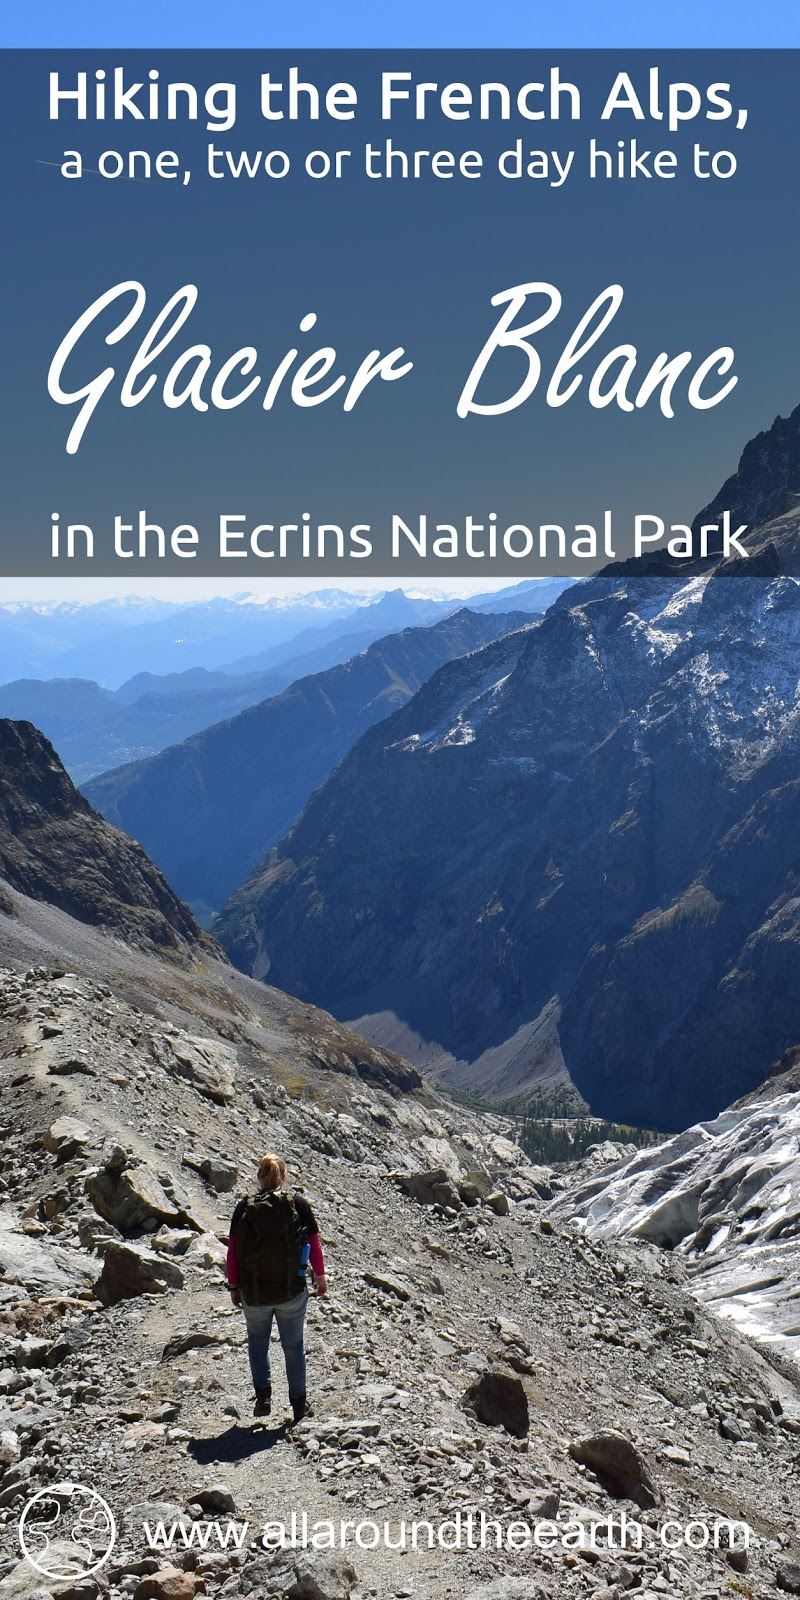 Guide on a three day hike to the Glacier Blanc in the Ecrins National Park in the Alps of France